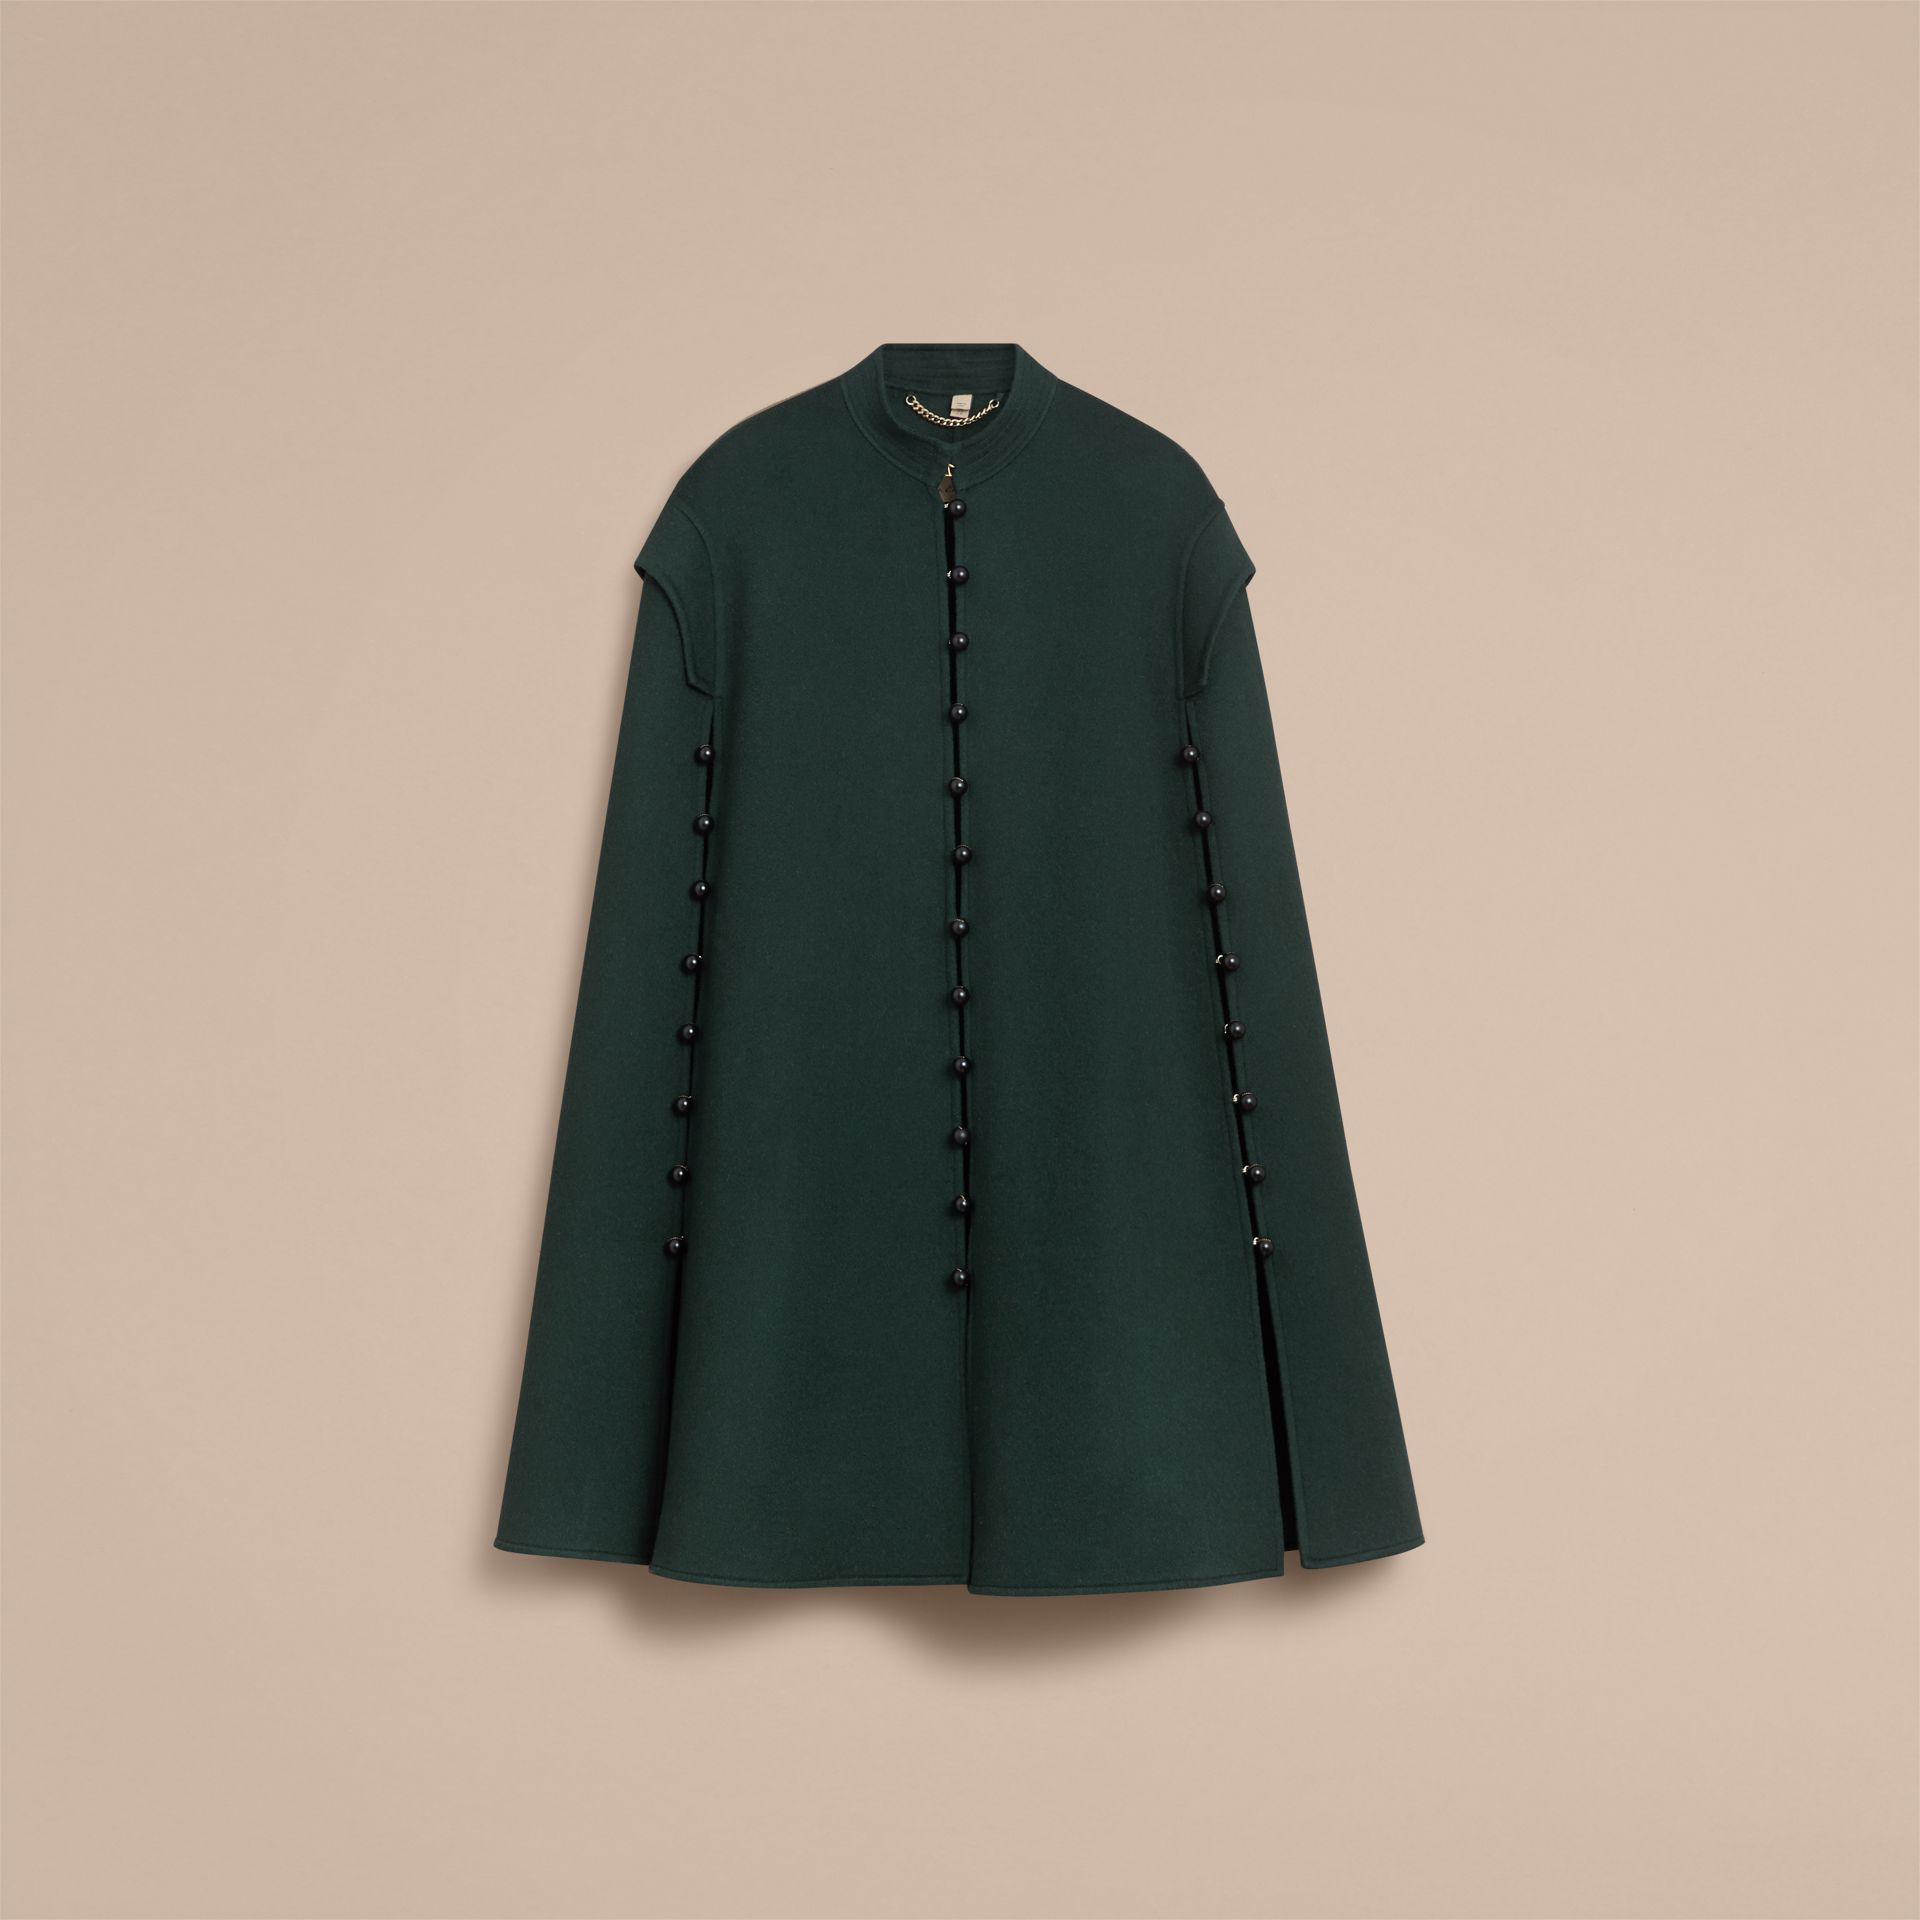 Domed Button Camel Hair Wool Cape in Dark Pewter Blue - Women | Burberry Australia - gallery image 4